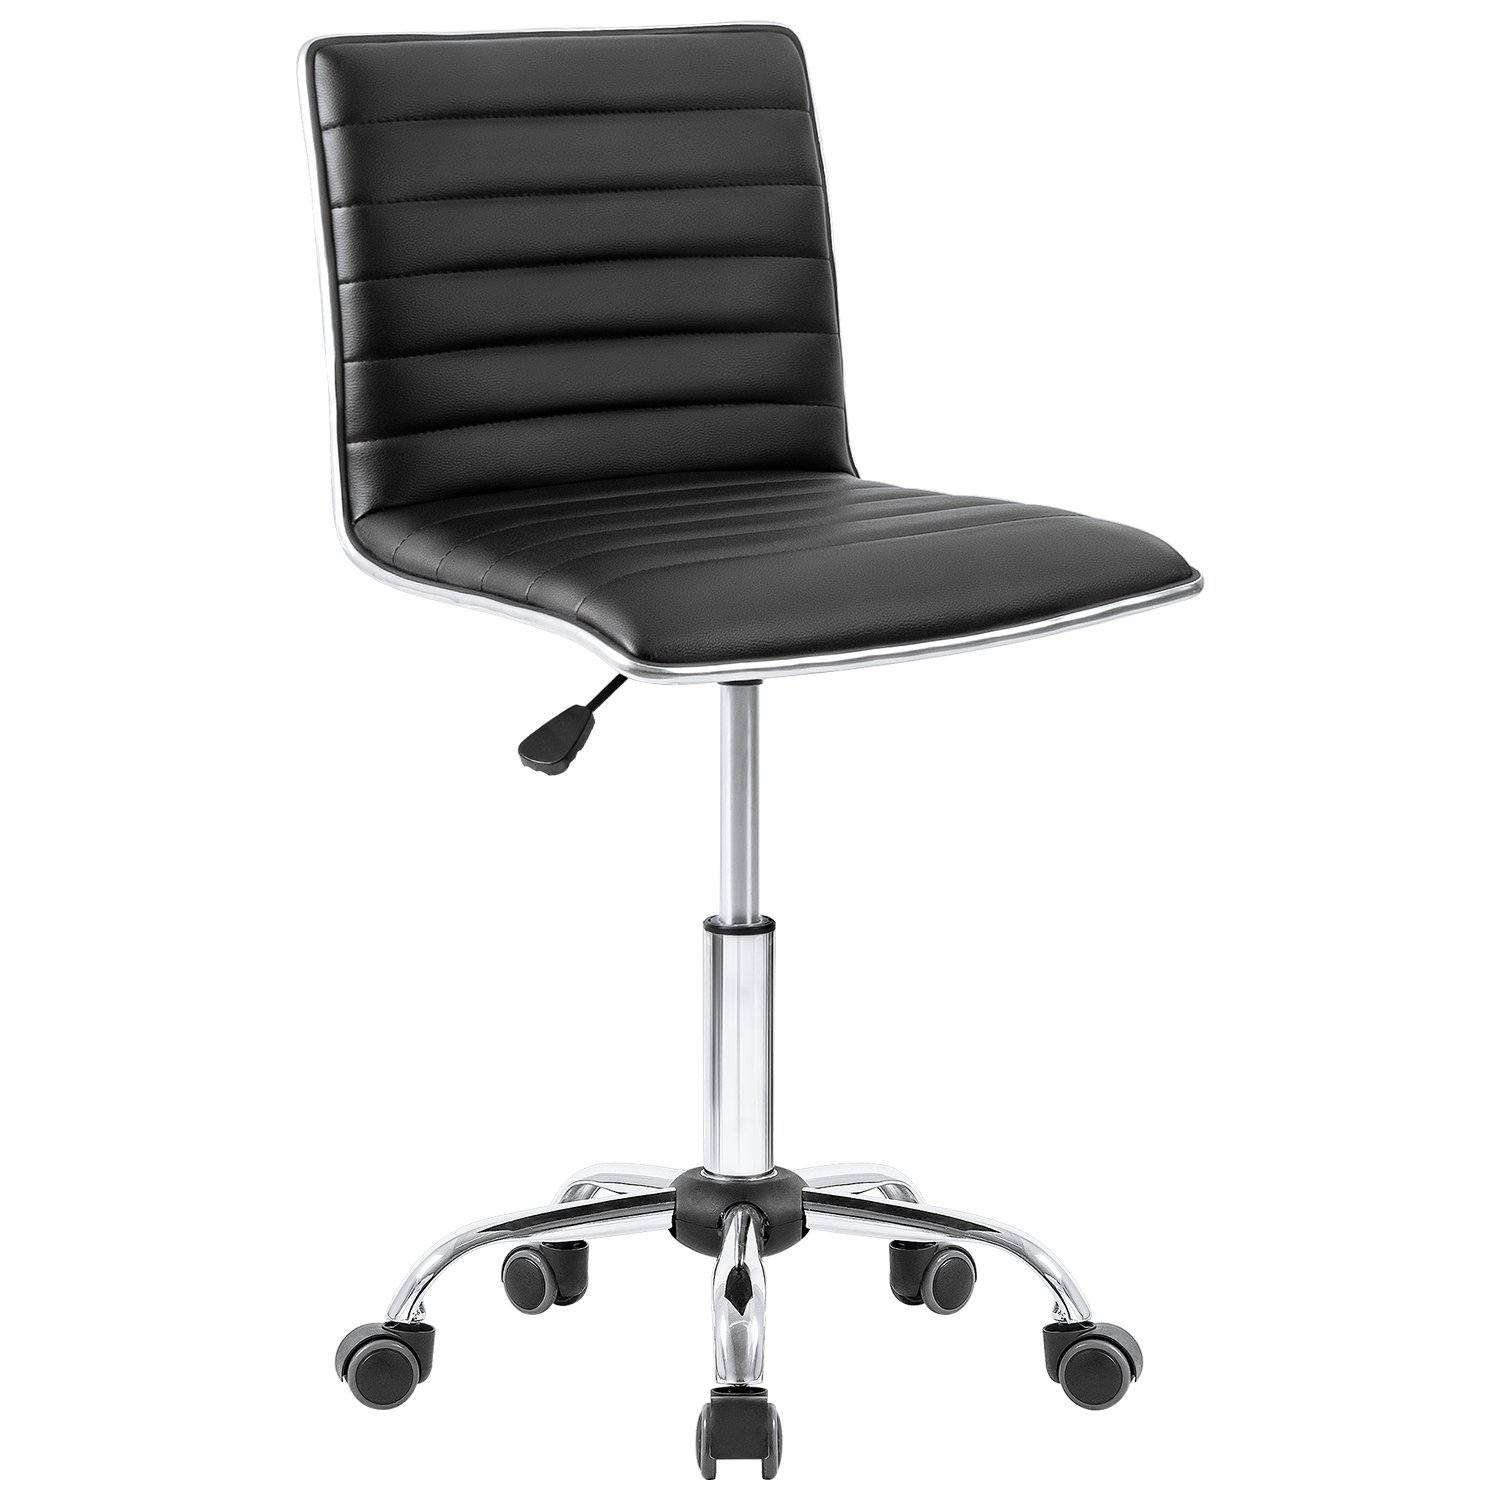 Homall Office Chair Ribbed Task Chair Armless Leather Desk Chair Mid Back Managerial Executive Chair Upholstery Computer Chair Secretarial Chair (Black)